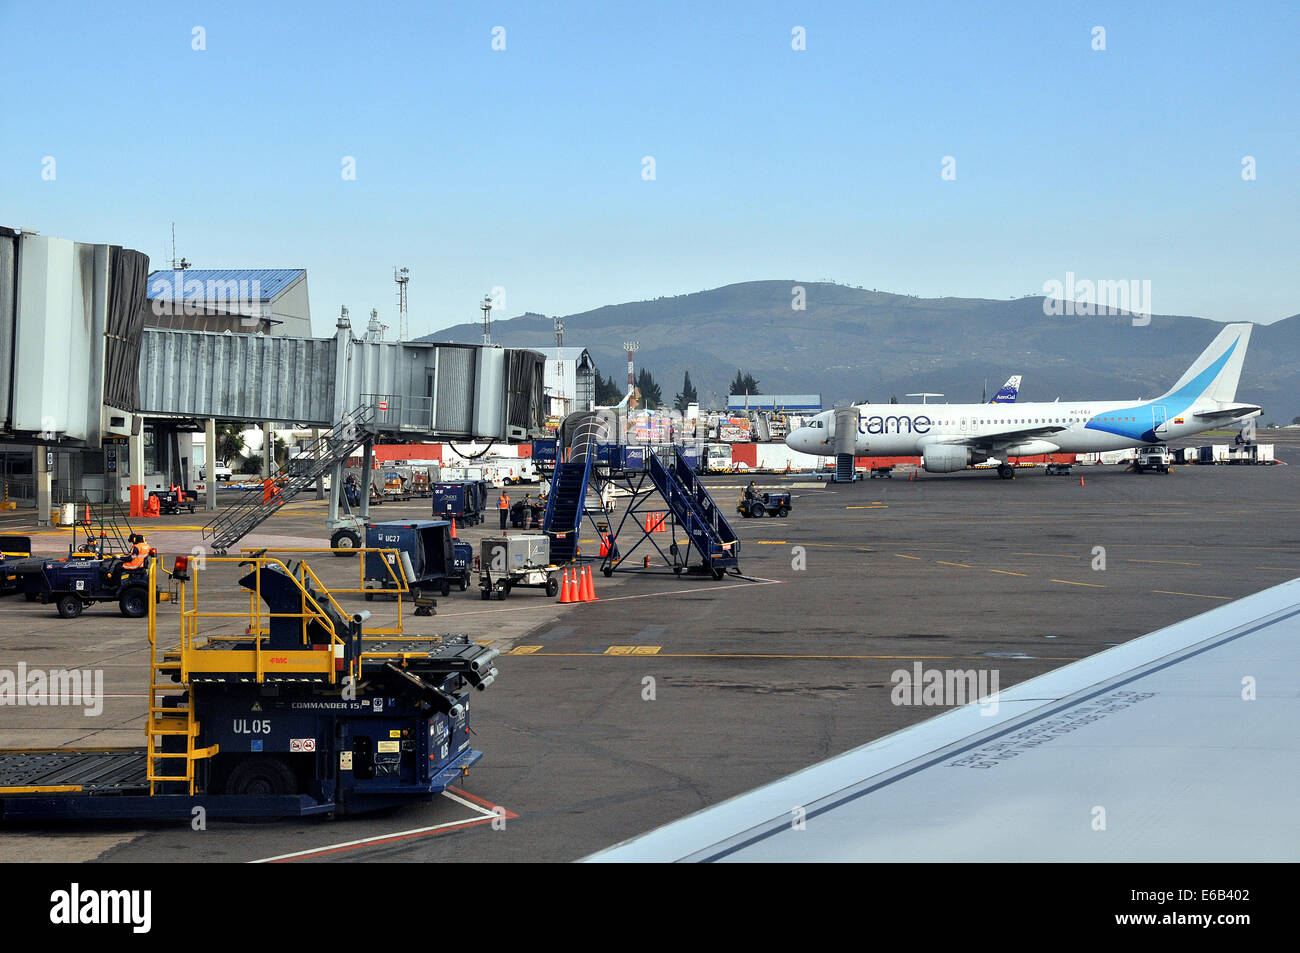 Airbus A320-214 of Tame airways Mareshal Sucre international airport (old) Quito Ecuador - Stock Image